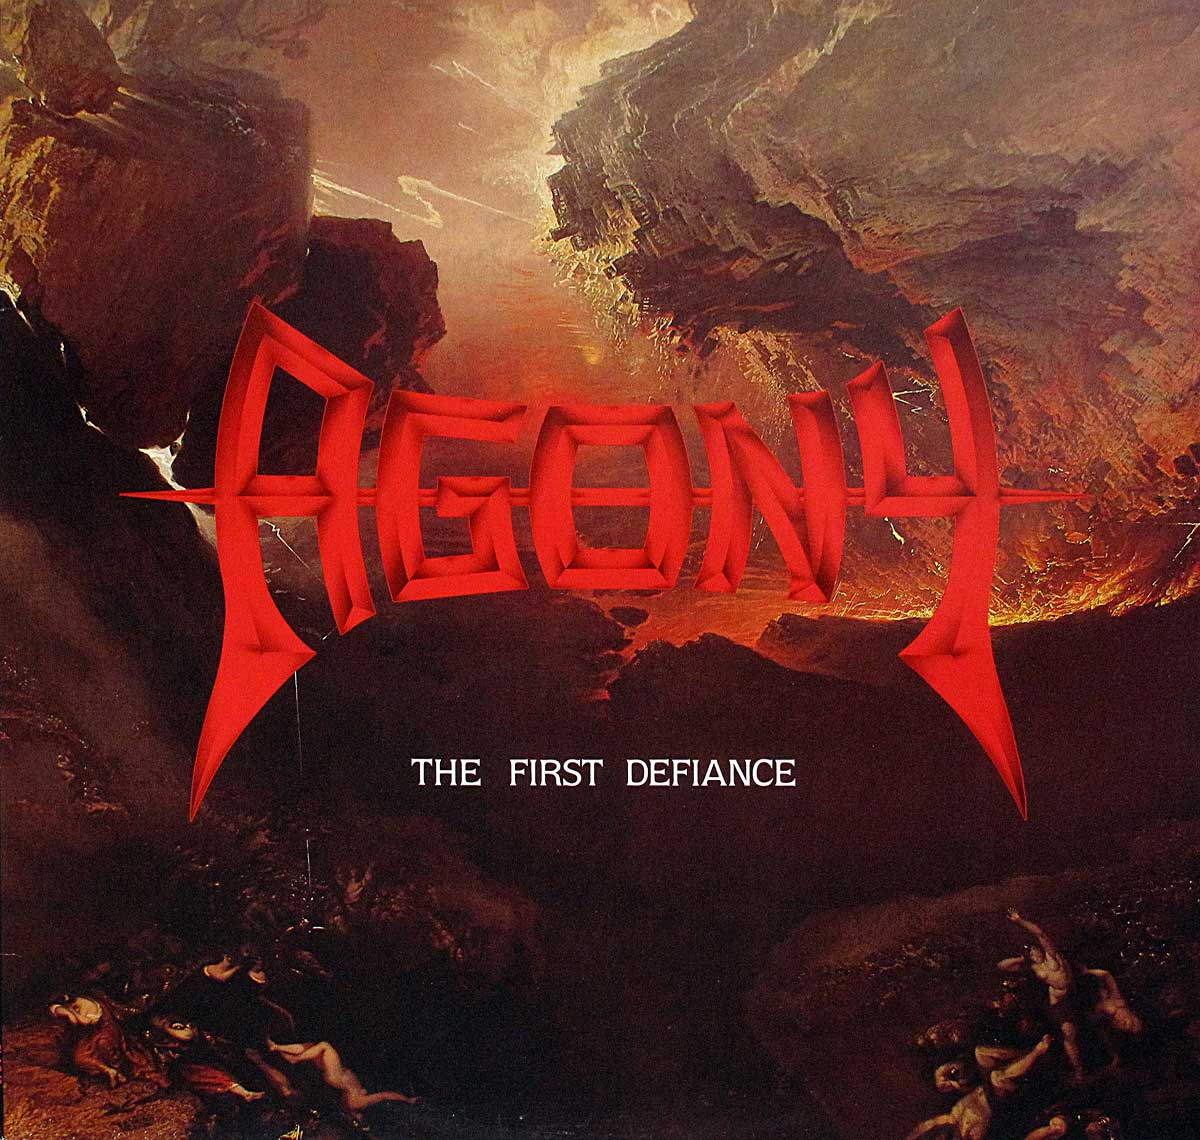 large photo of the album front cover of: Agony - The First Defiance